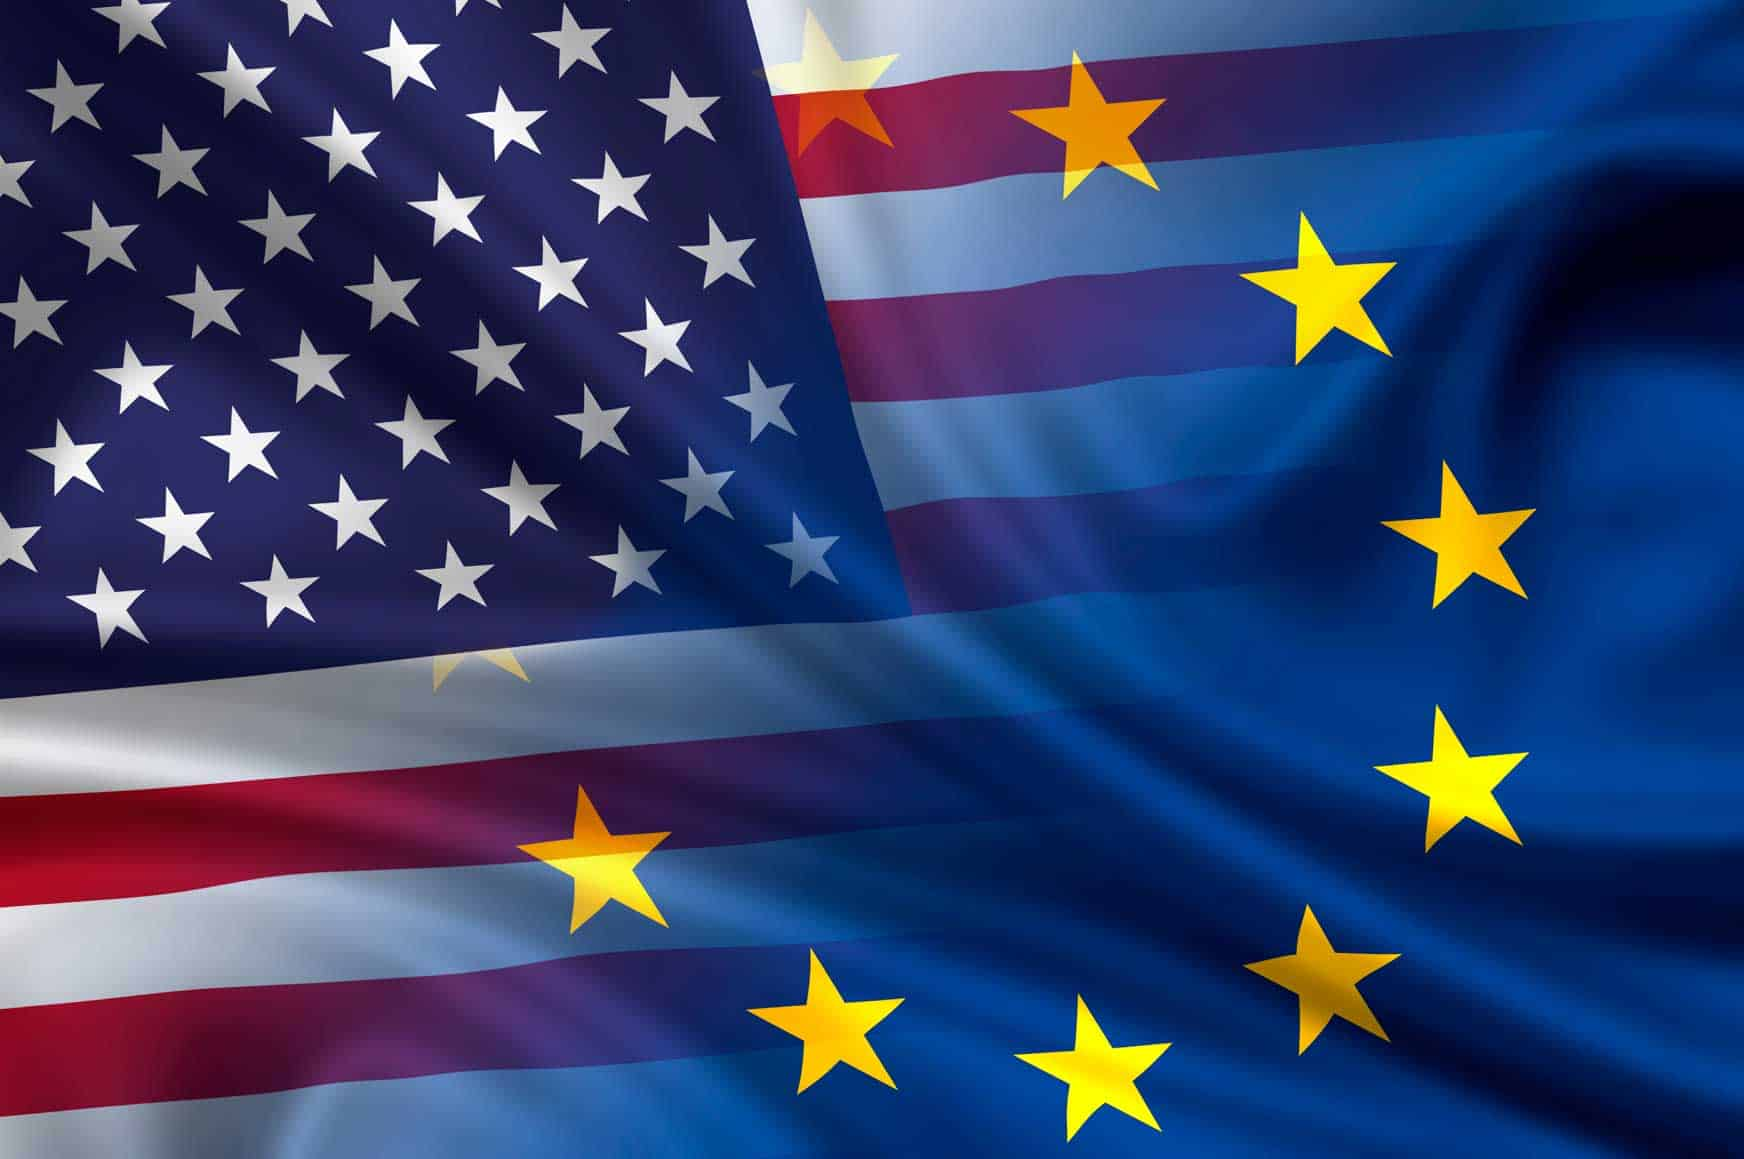 IE Transatlantic Relations Initiative